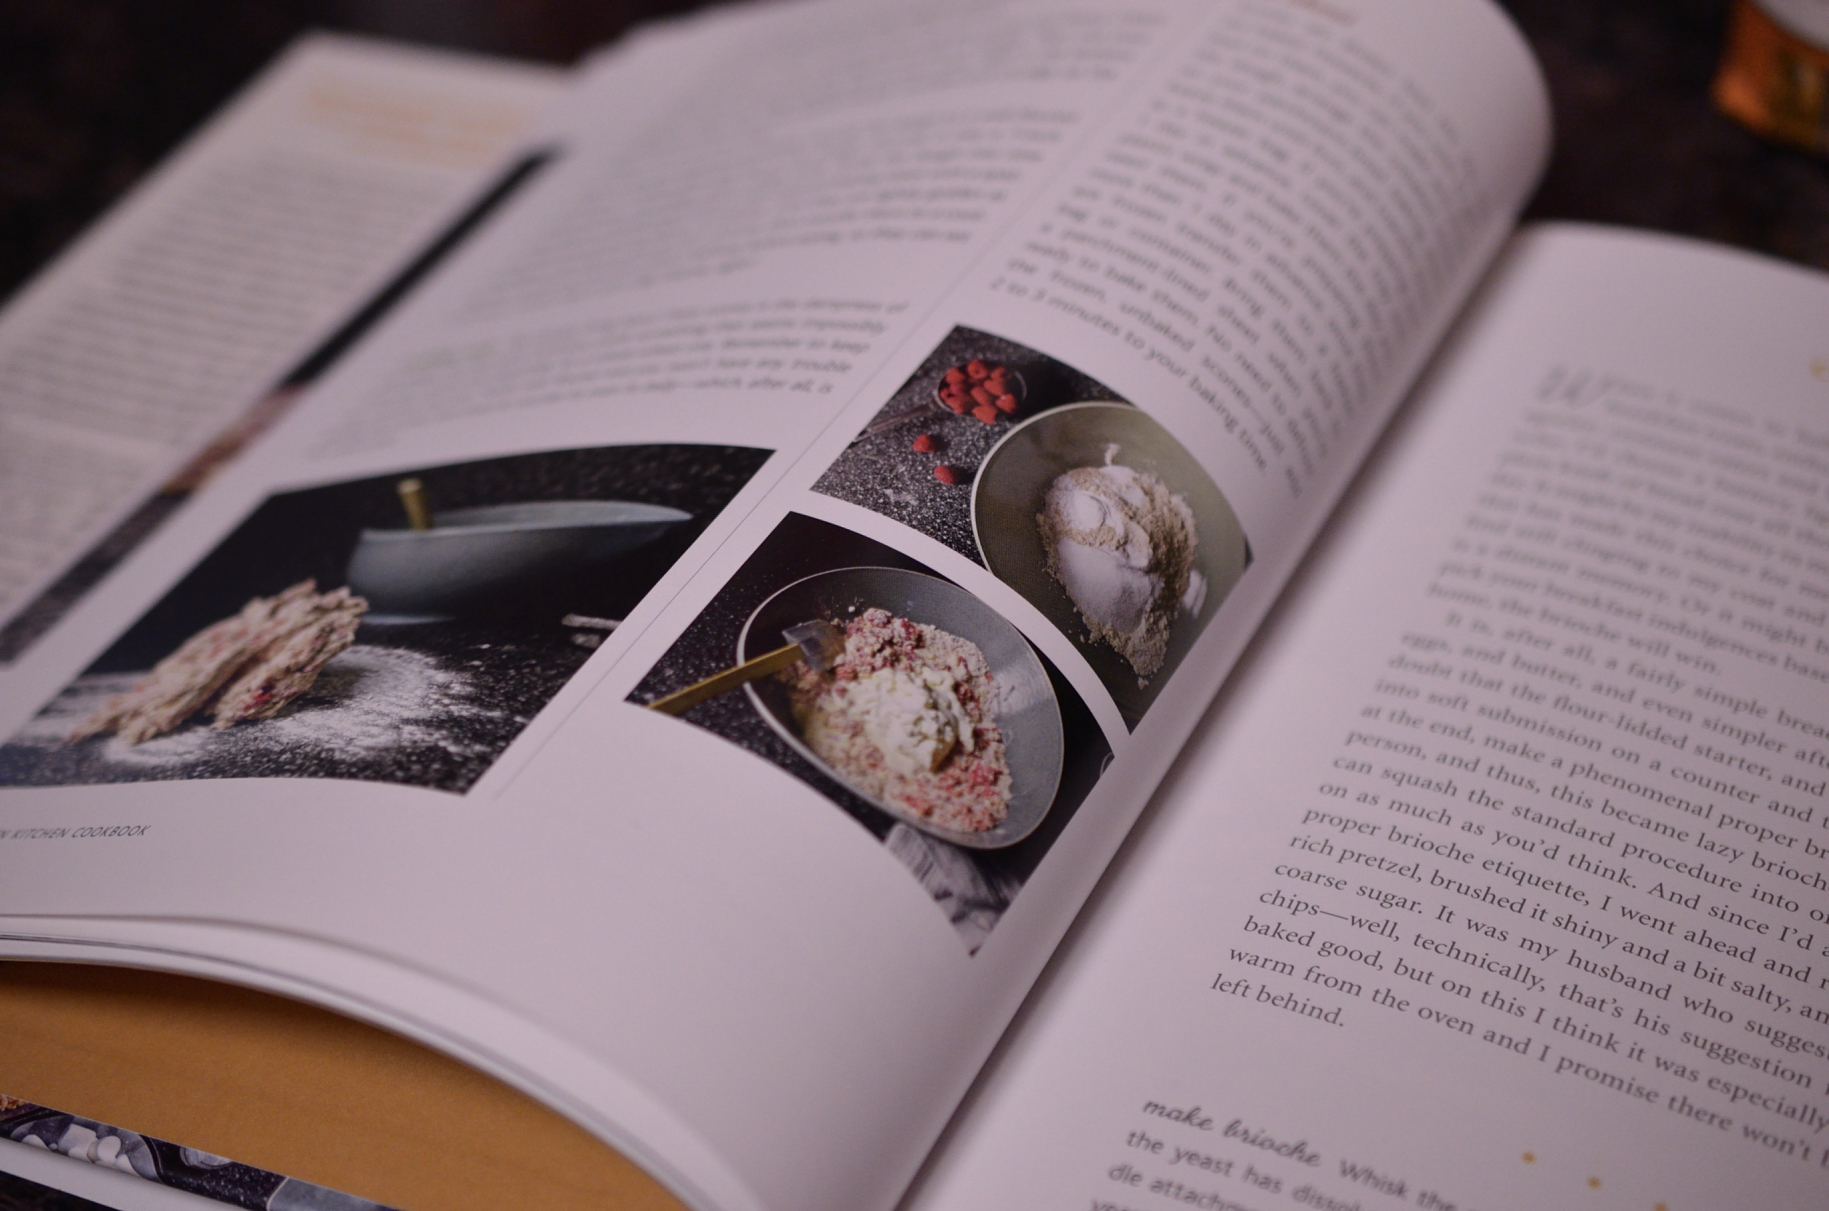 THE cookbook. I highly recommend it